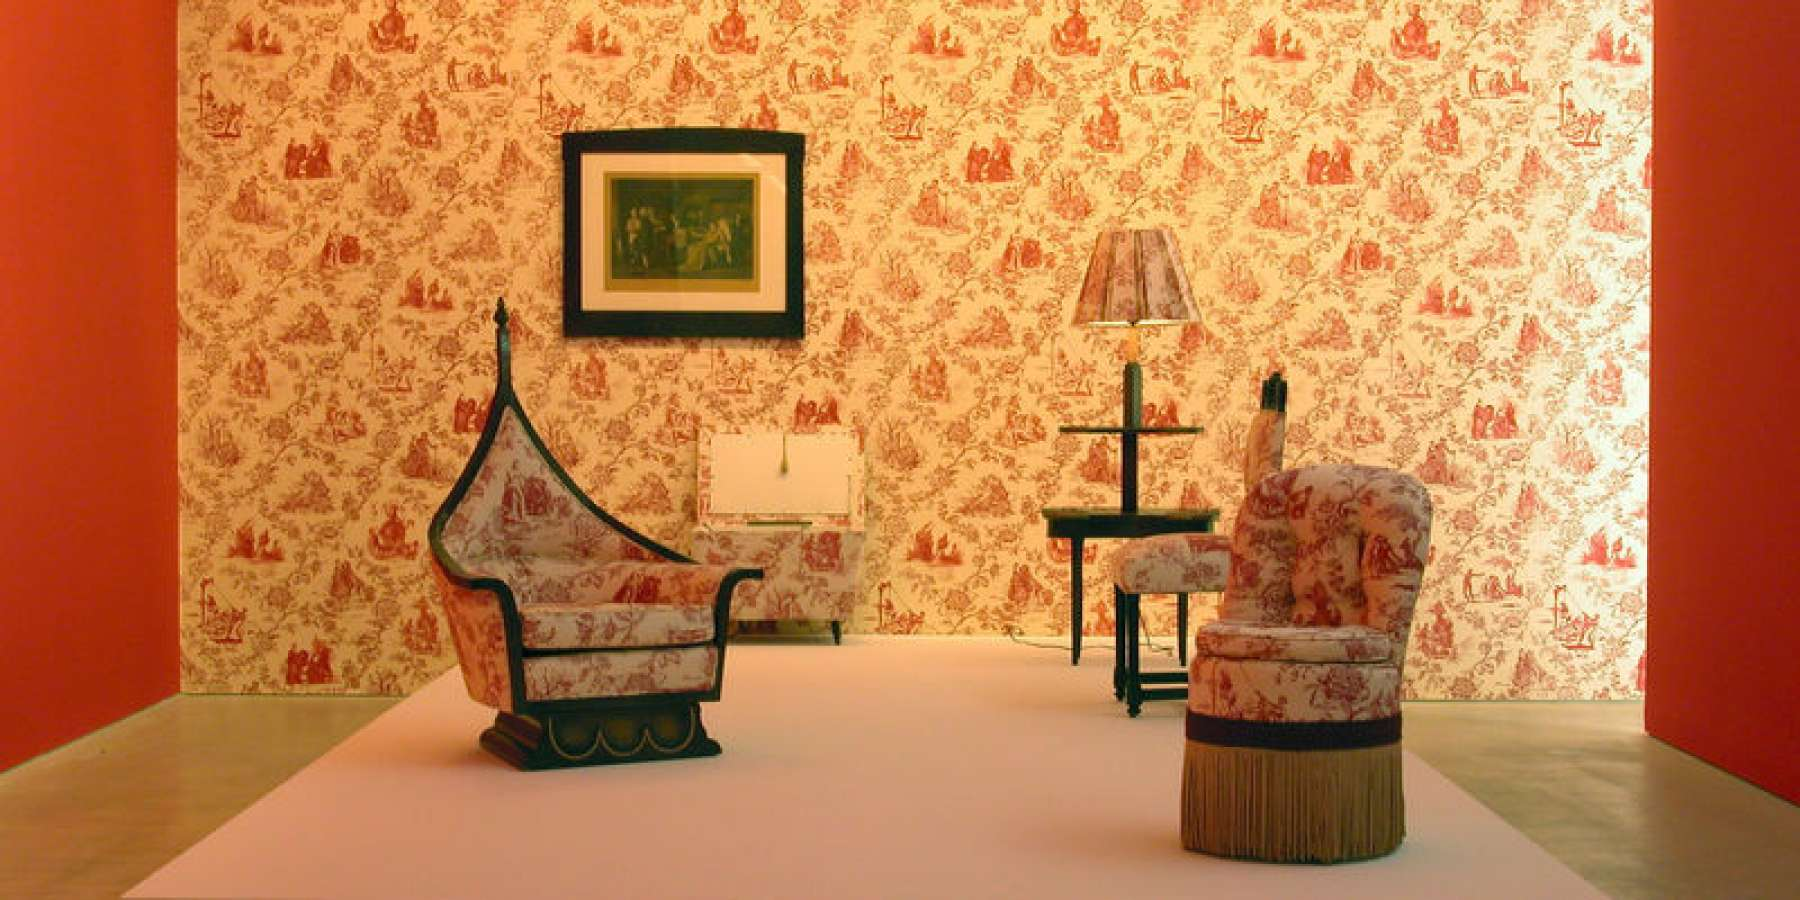 Renée Green, Artist Mise-en-Scène: Commemorative Toile , 1992–94 Medium Photograph, upholstered chair, wall treatment, wallpaper Dimensions Dimensions variable Credit Line Photograph, courtesy of the artist and Free Agent Media; chair, collection of Eileen Harris Norton; wallpaper, courtesy of the artist, Free Agent Media, and the Fabric Workshop. Installation view, Galerie im Taxisplais, Innsbruck, Austria, 2004, courtesy of the artist and Free Agent Media (photo: Rainer Iglar)